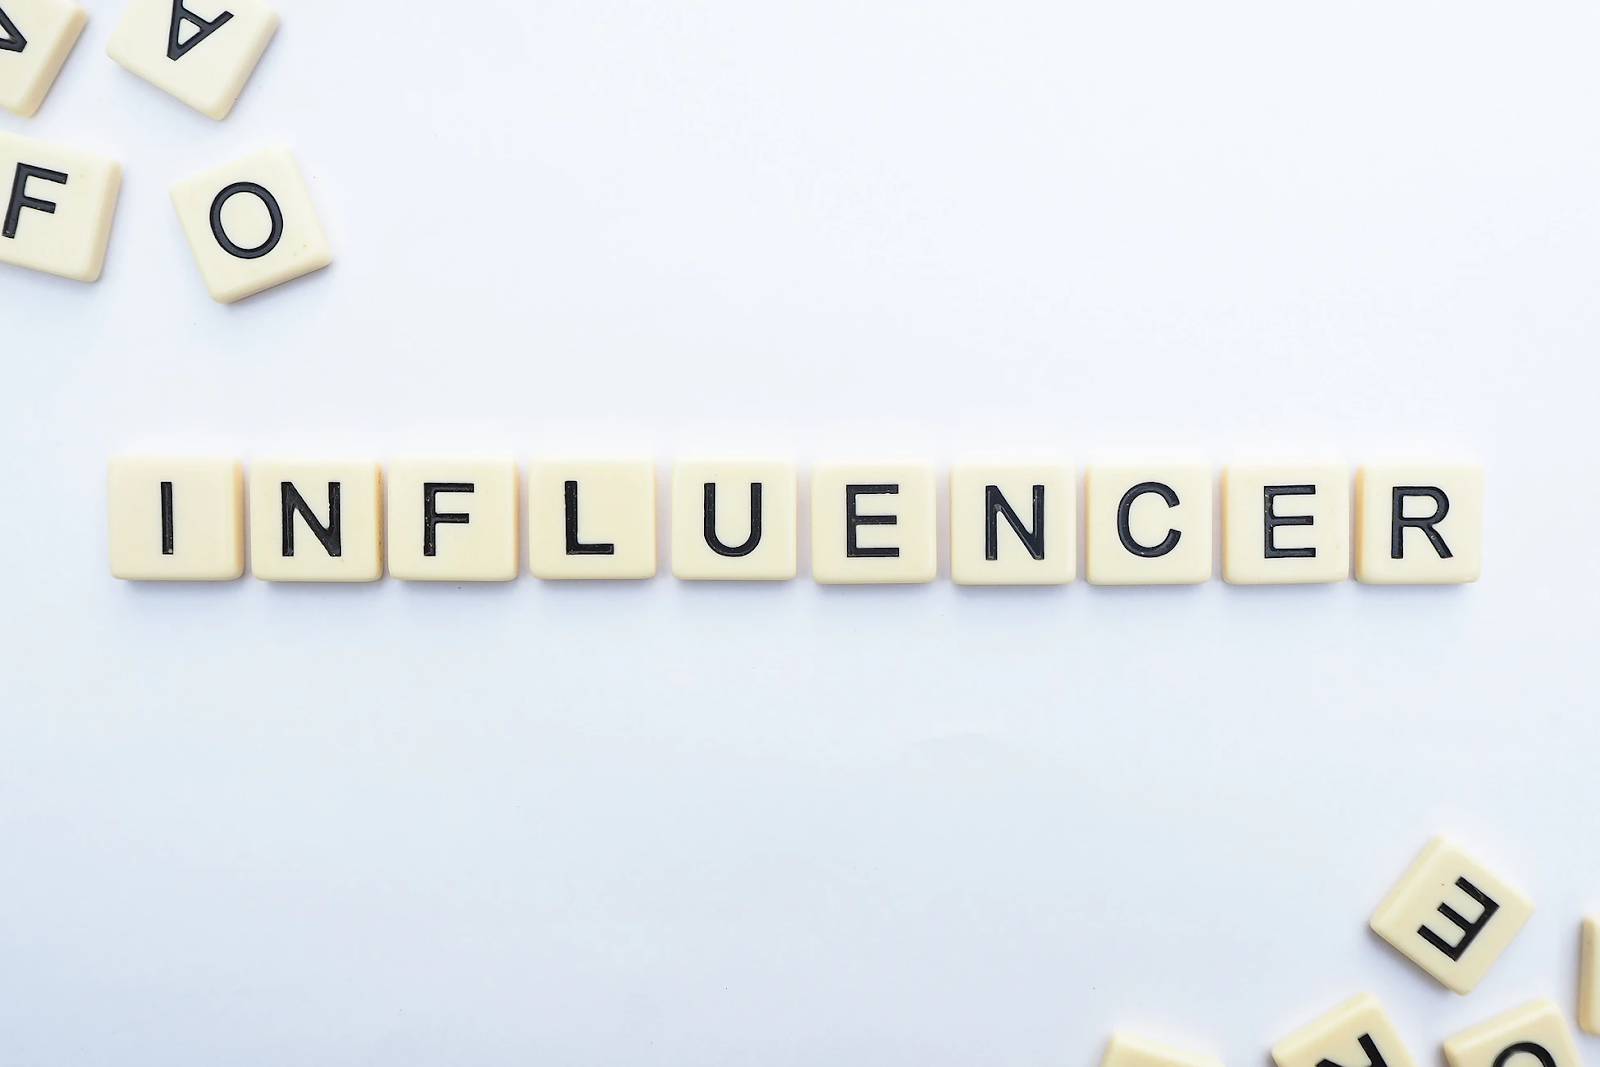 Tile pieces spelling out INFLUENCER